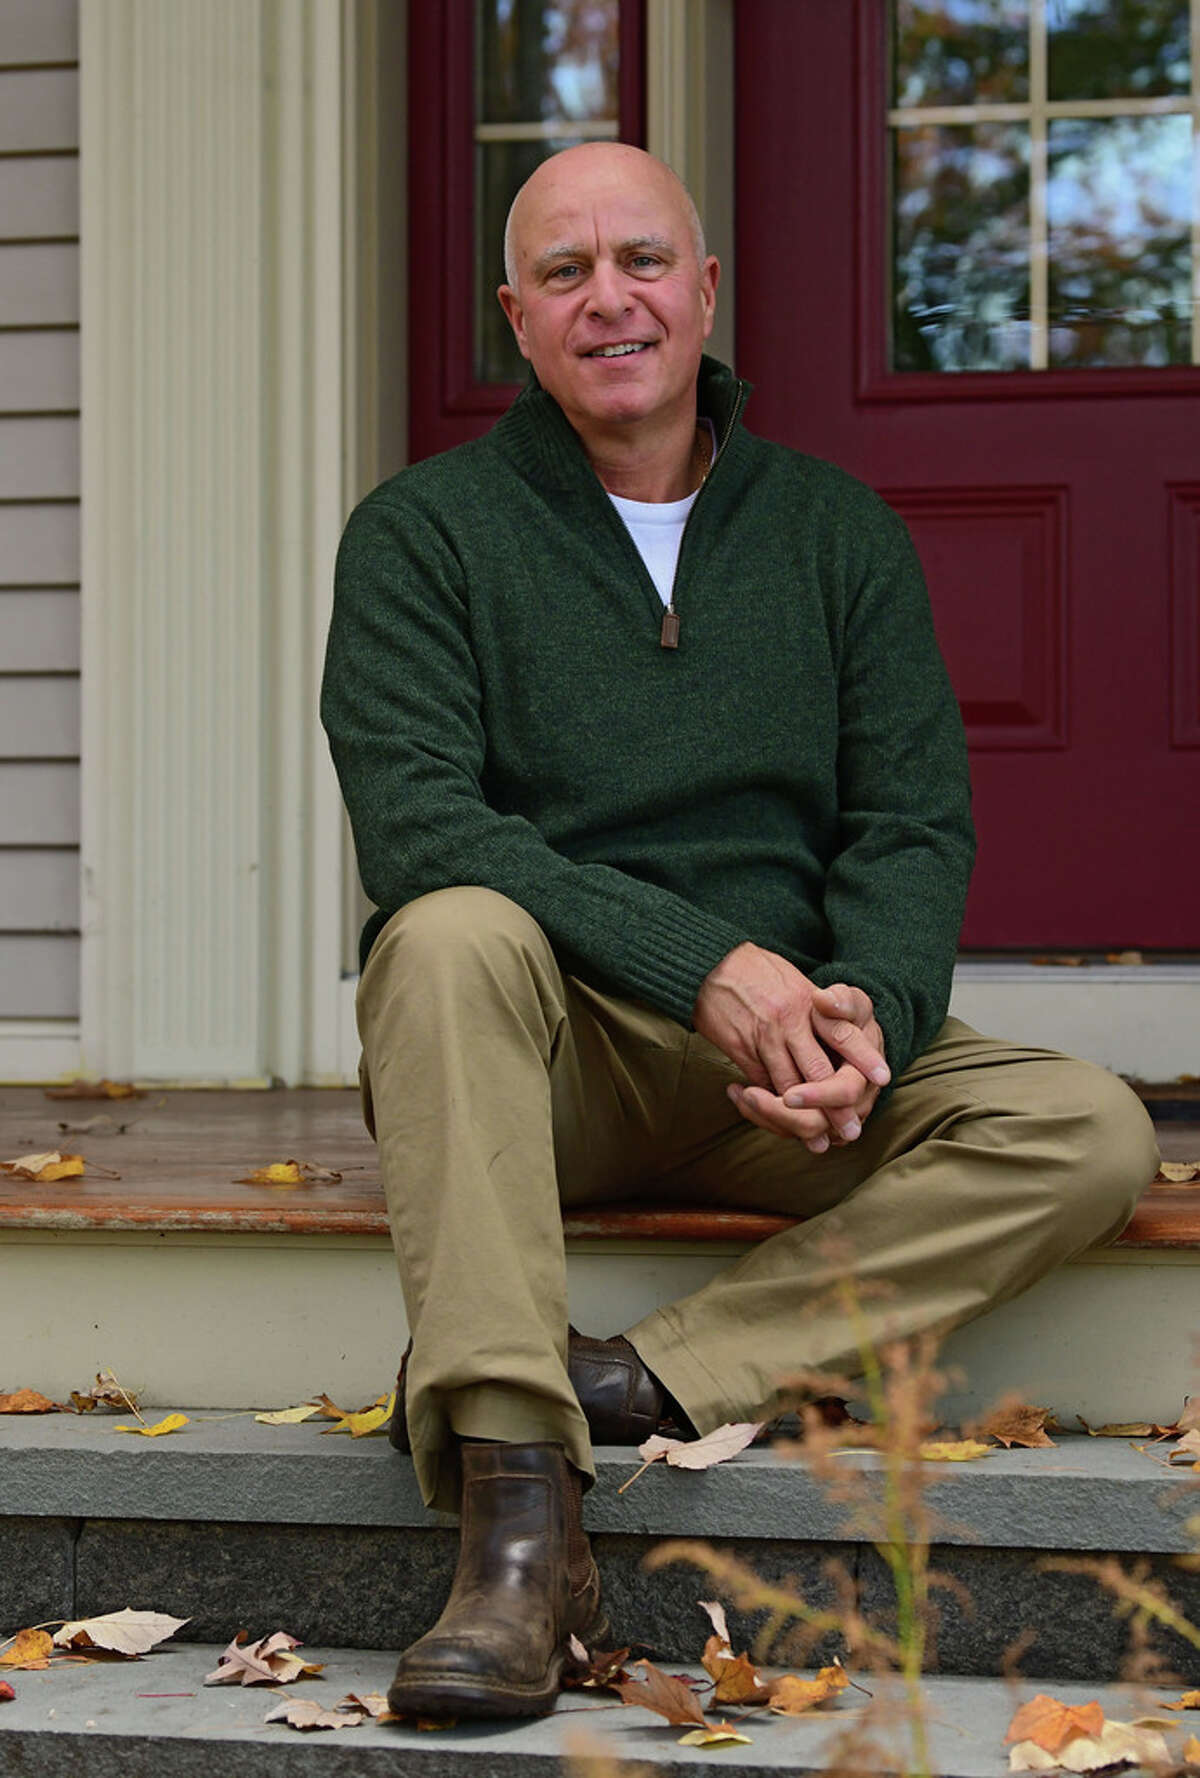 Peter DiLillo is seen outside his home on Friday, Oct. 23, 2020 in Guilderland, N.Y. DiLillo is a volunteer for Community Caregivers, a Guilderland based non-profit that focuses on home health care. (Lori Van Buren/Times Union)